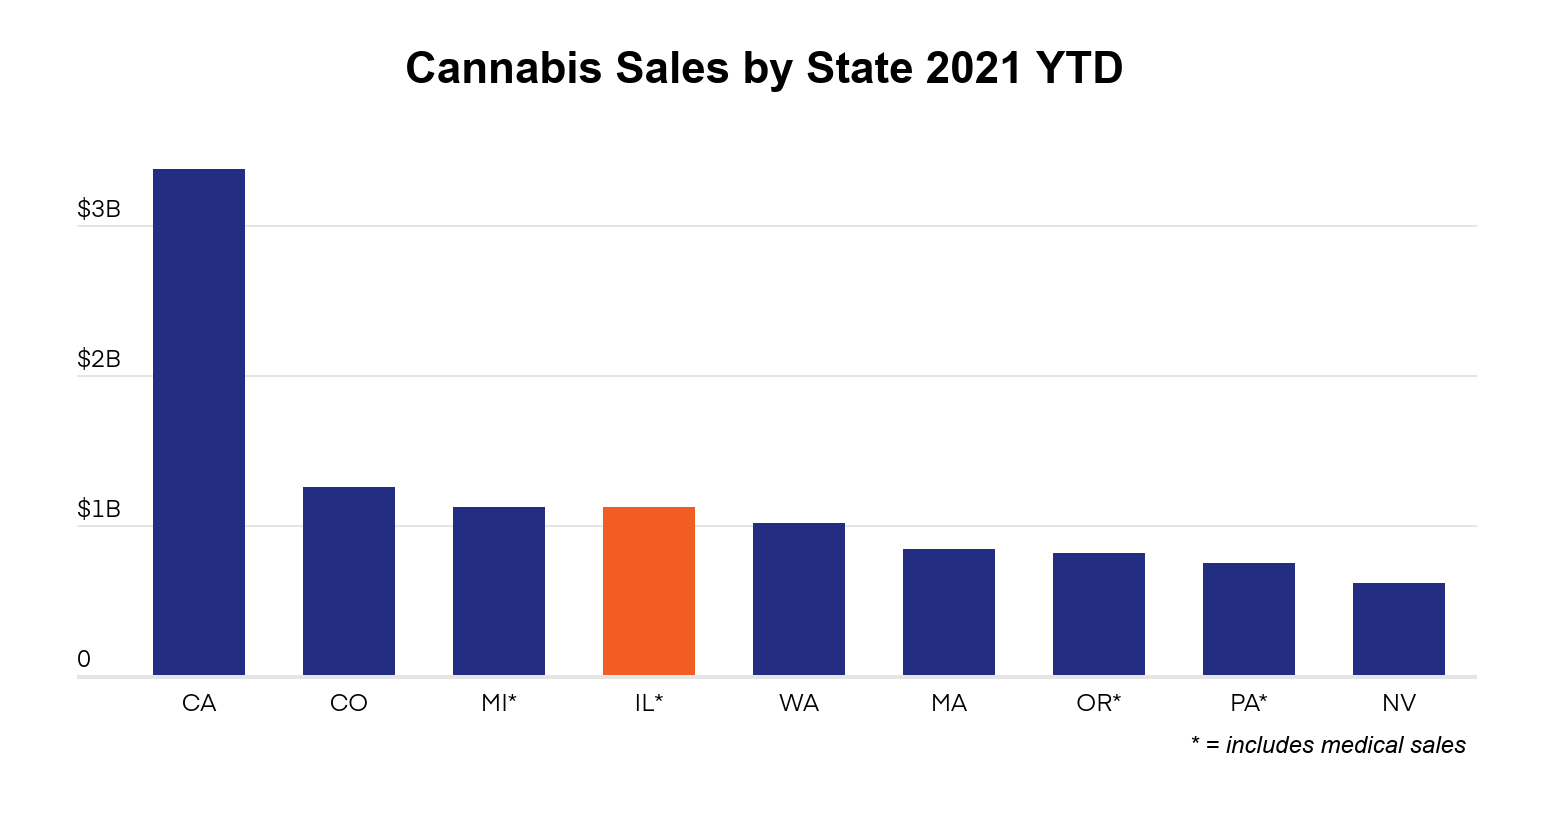 Illinois cannabis market overview graph 1: Total cannabis sales by state